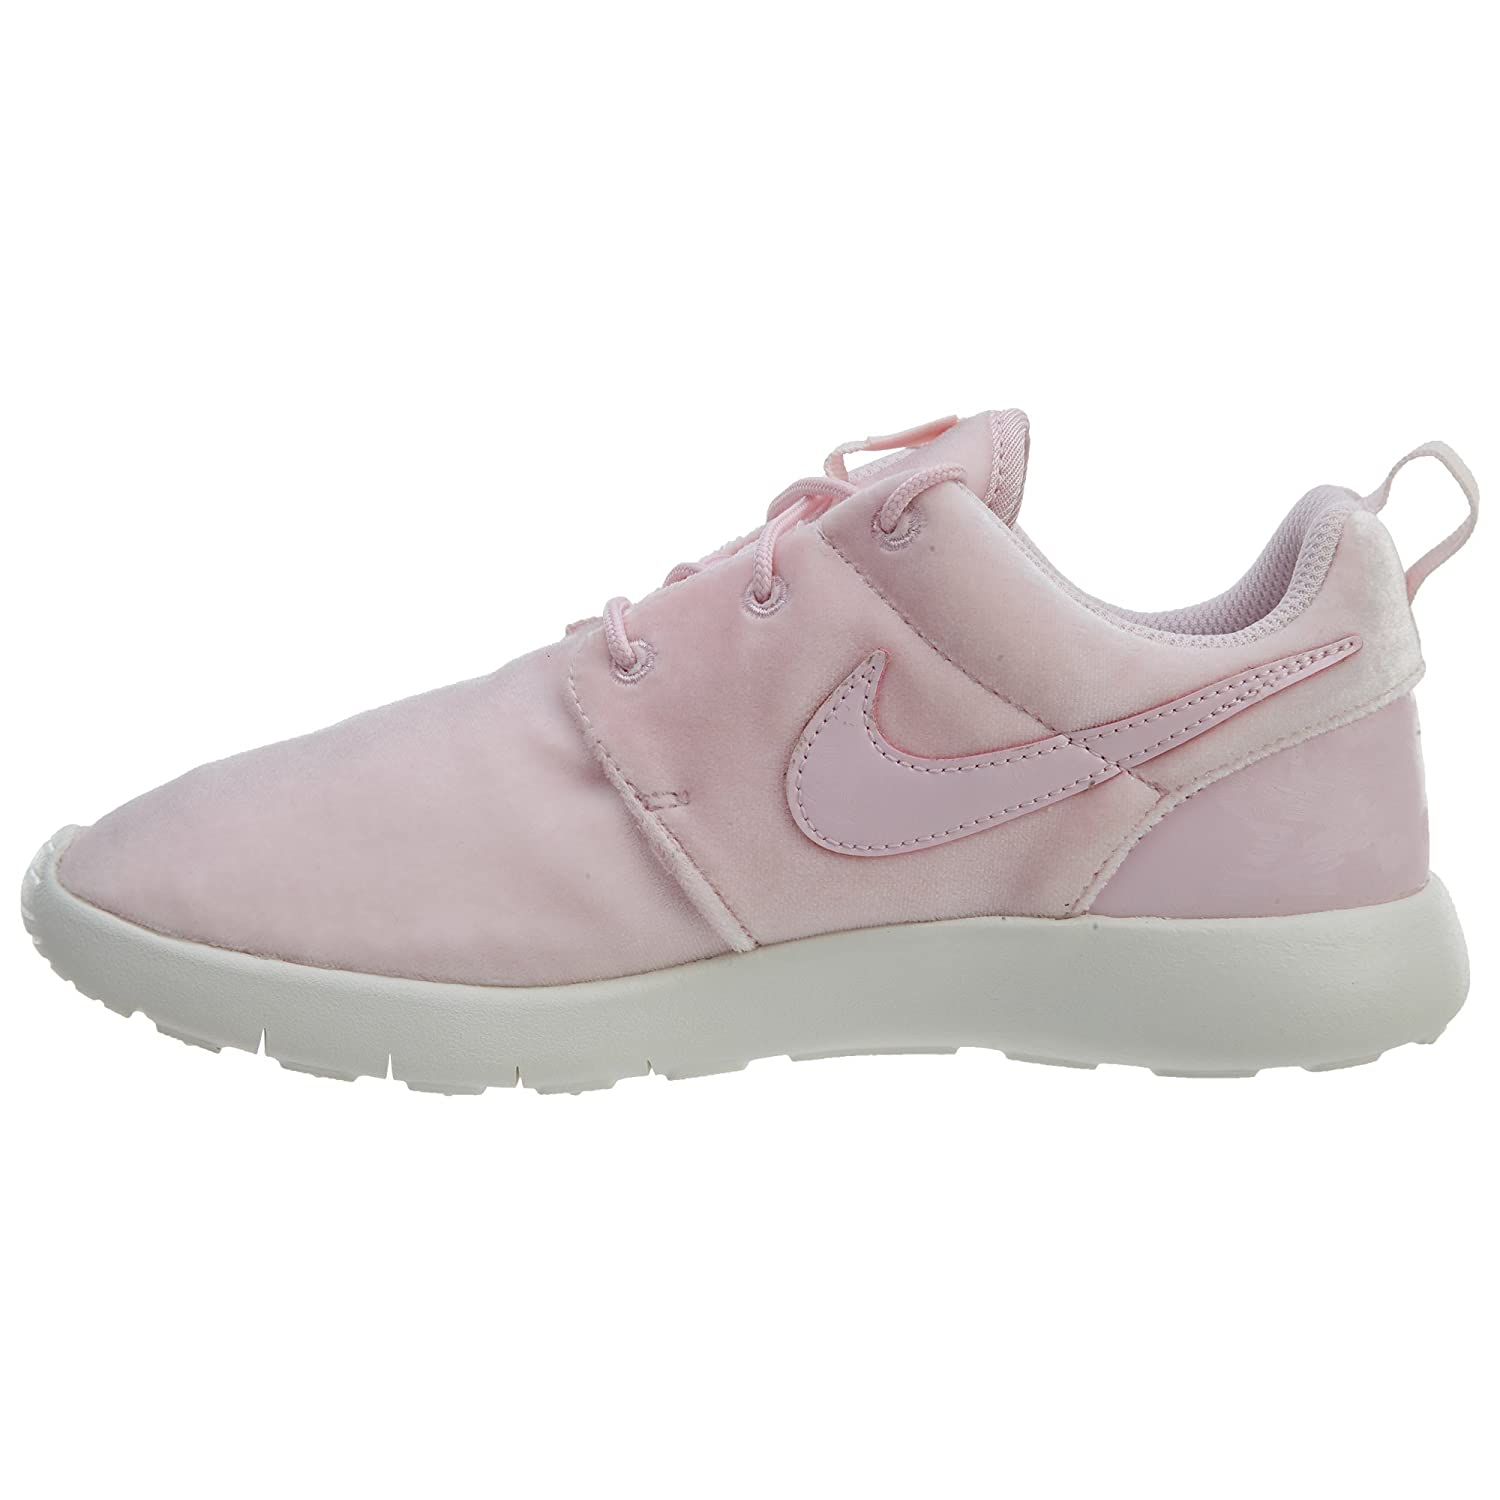 best service f8a16 2abca Nike Girl's Roshe One Running Shoe (PS)